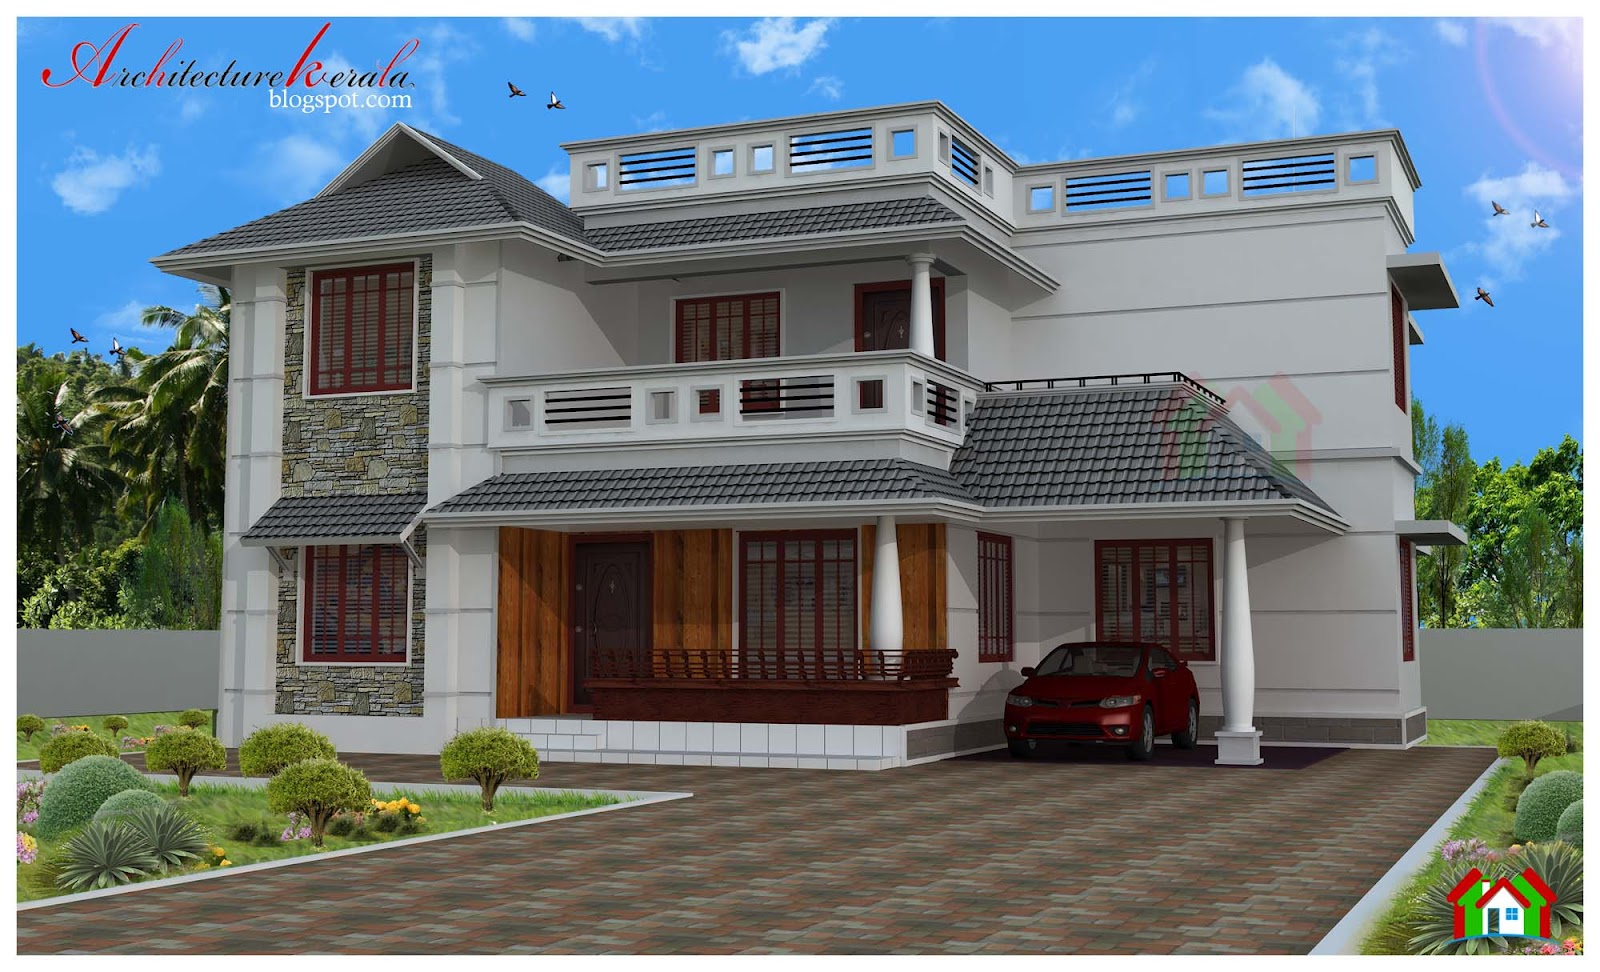 We Under Taking Full Contract Works Of Houses. Contact : GREEN ARC Creators  Sachin  9539444867. Thrissur U0026 Ernakulam 2214 Square Feet Four Bedroom ...